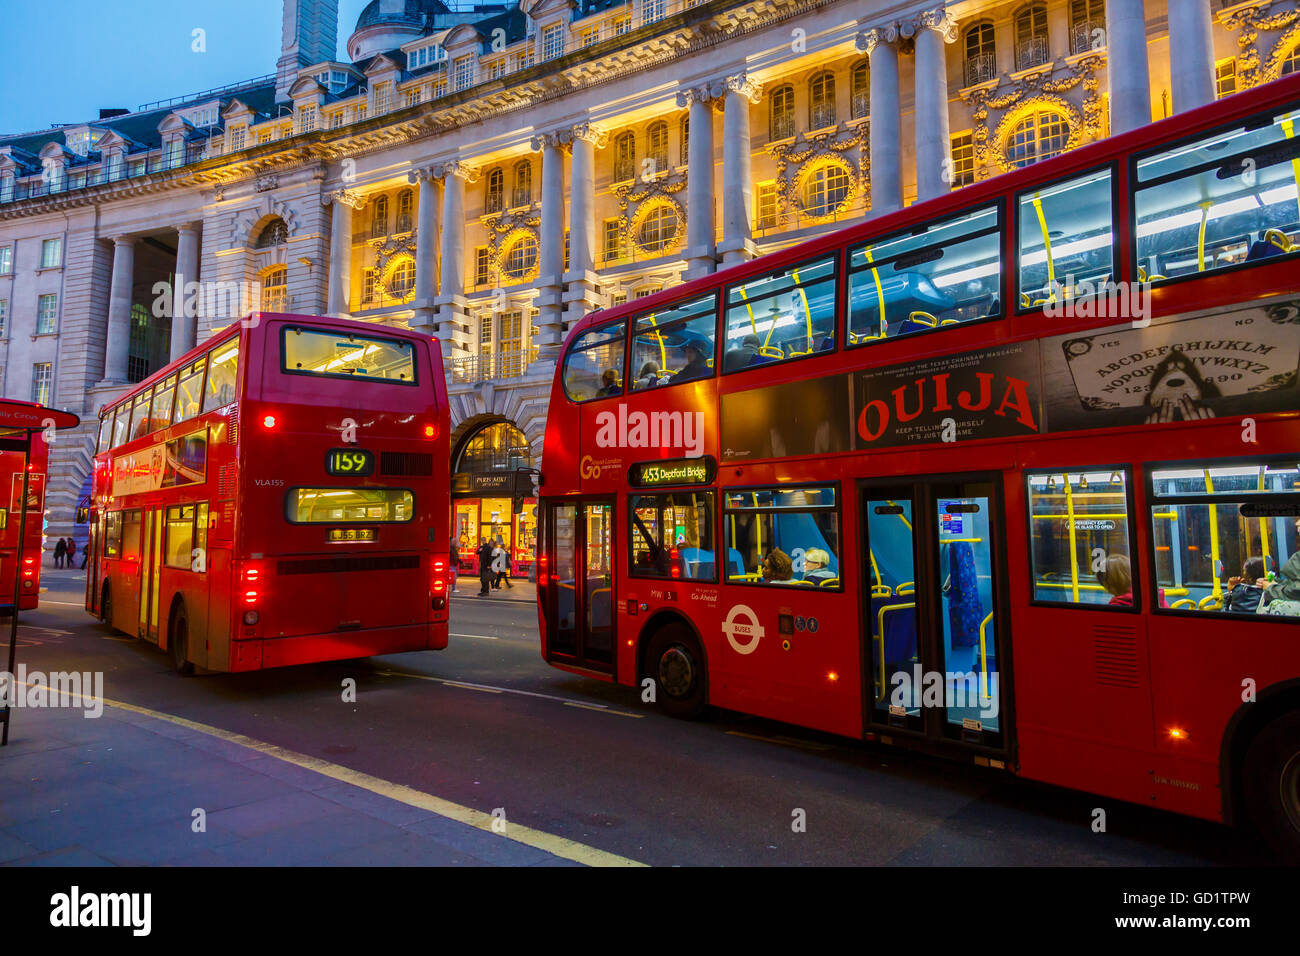 Traditional red buses. Picadilly street. London, England, United Kingdom, Europe. - Stock Image